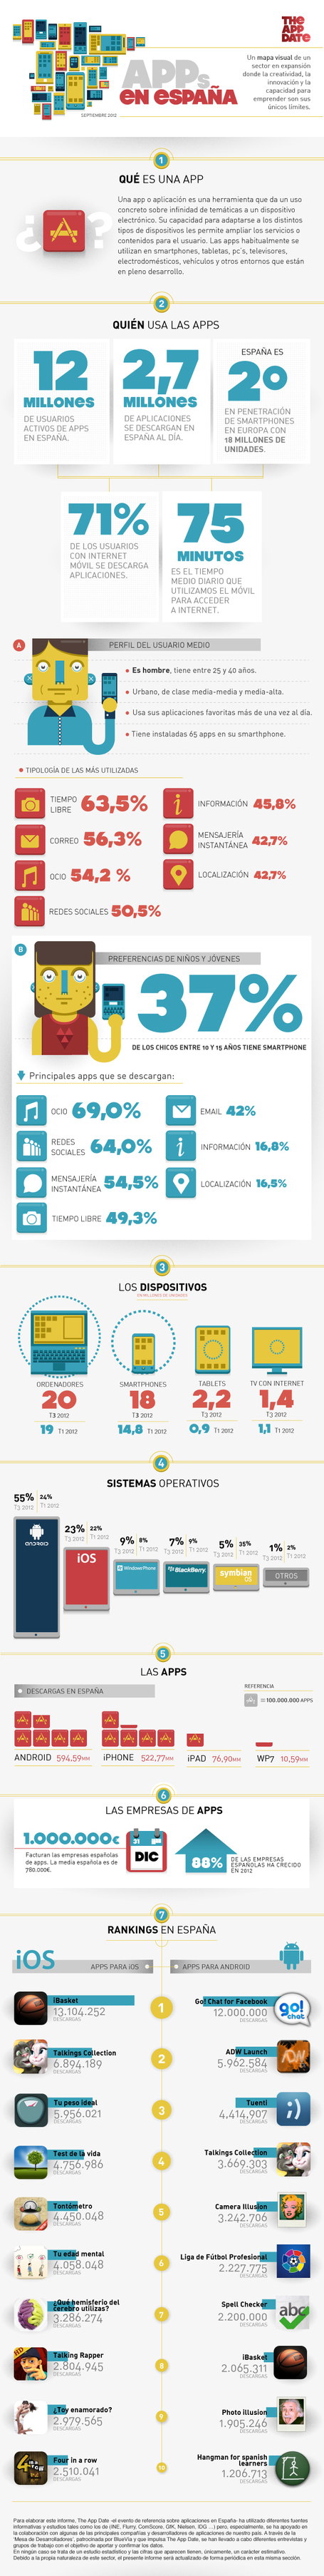 #Infografia: Uso de las ·APPs en España | Salud Social Media | Scoop.it